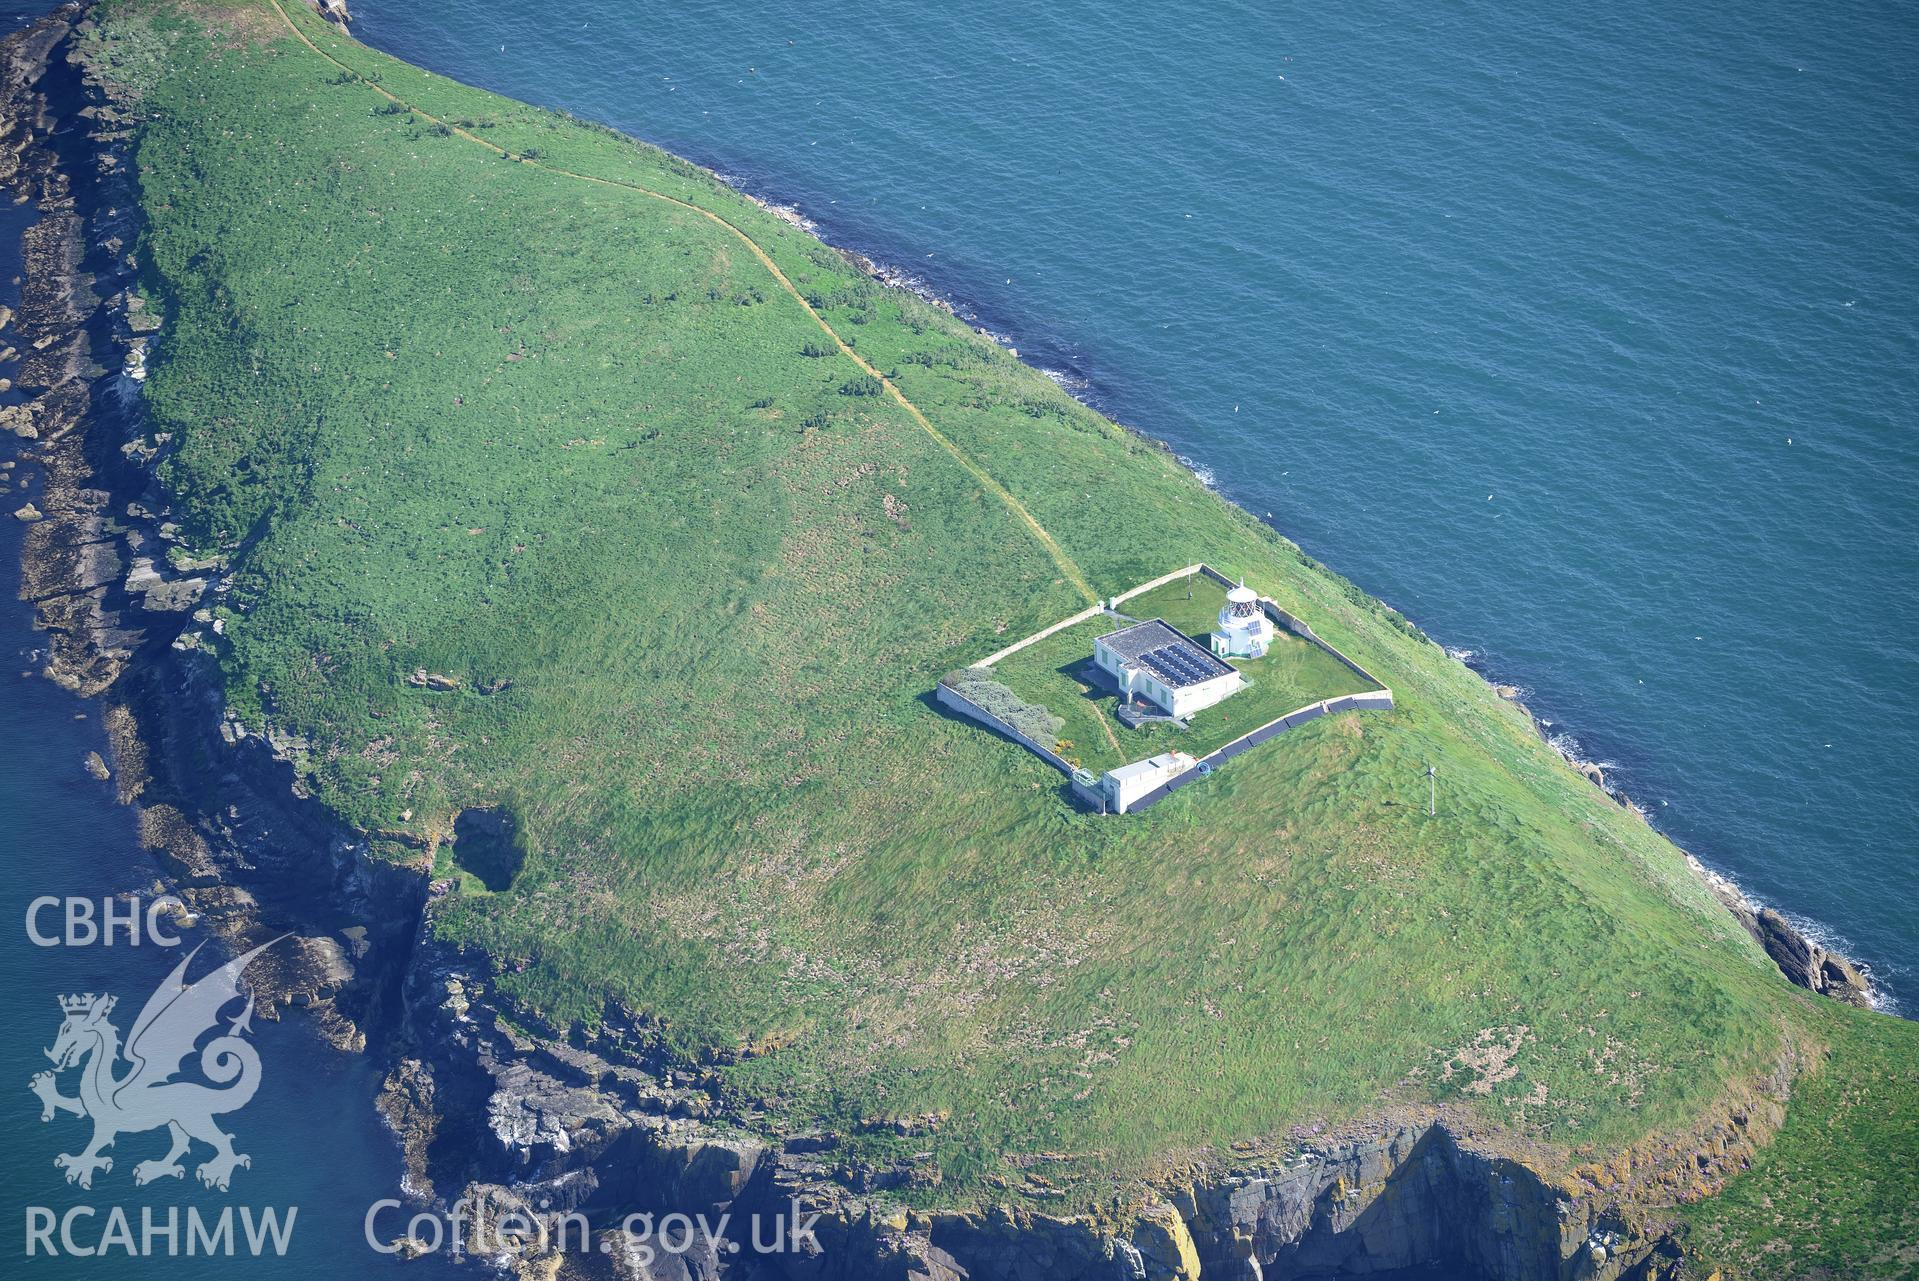 Aerial photography of St Tudwal's Island West taken on 3rd May 2017.  Baseline aerial reconnaissance survey for the CHERISH Project. ? Crown: CHERISH PROJECT 2017. Produced with EU funds through the Ireland Wales Co-operation Programme 2014-2020. All material made freely available through the Open Government Licence.